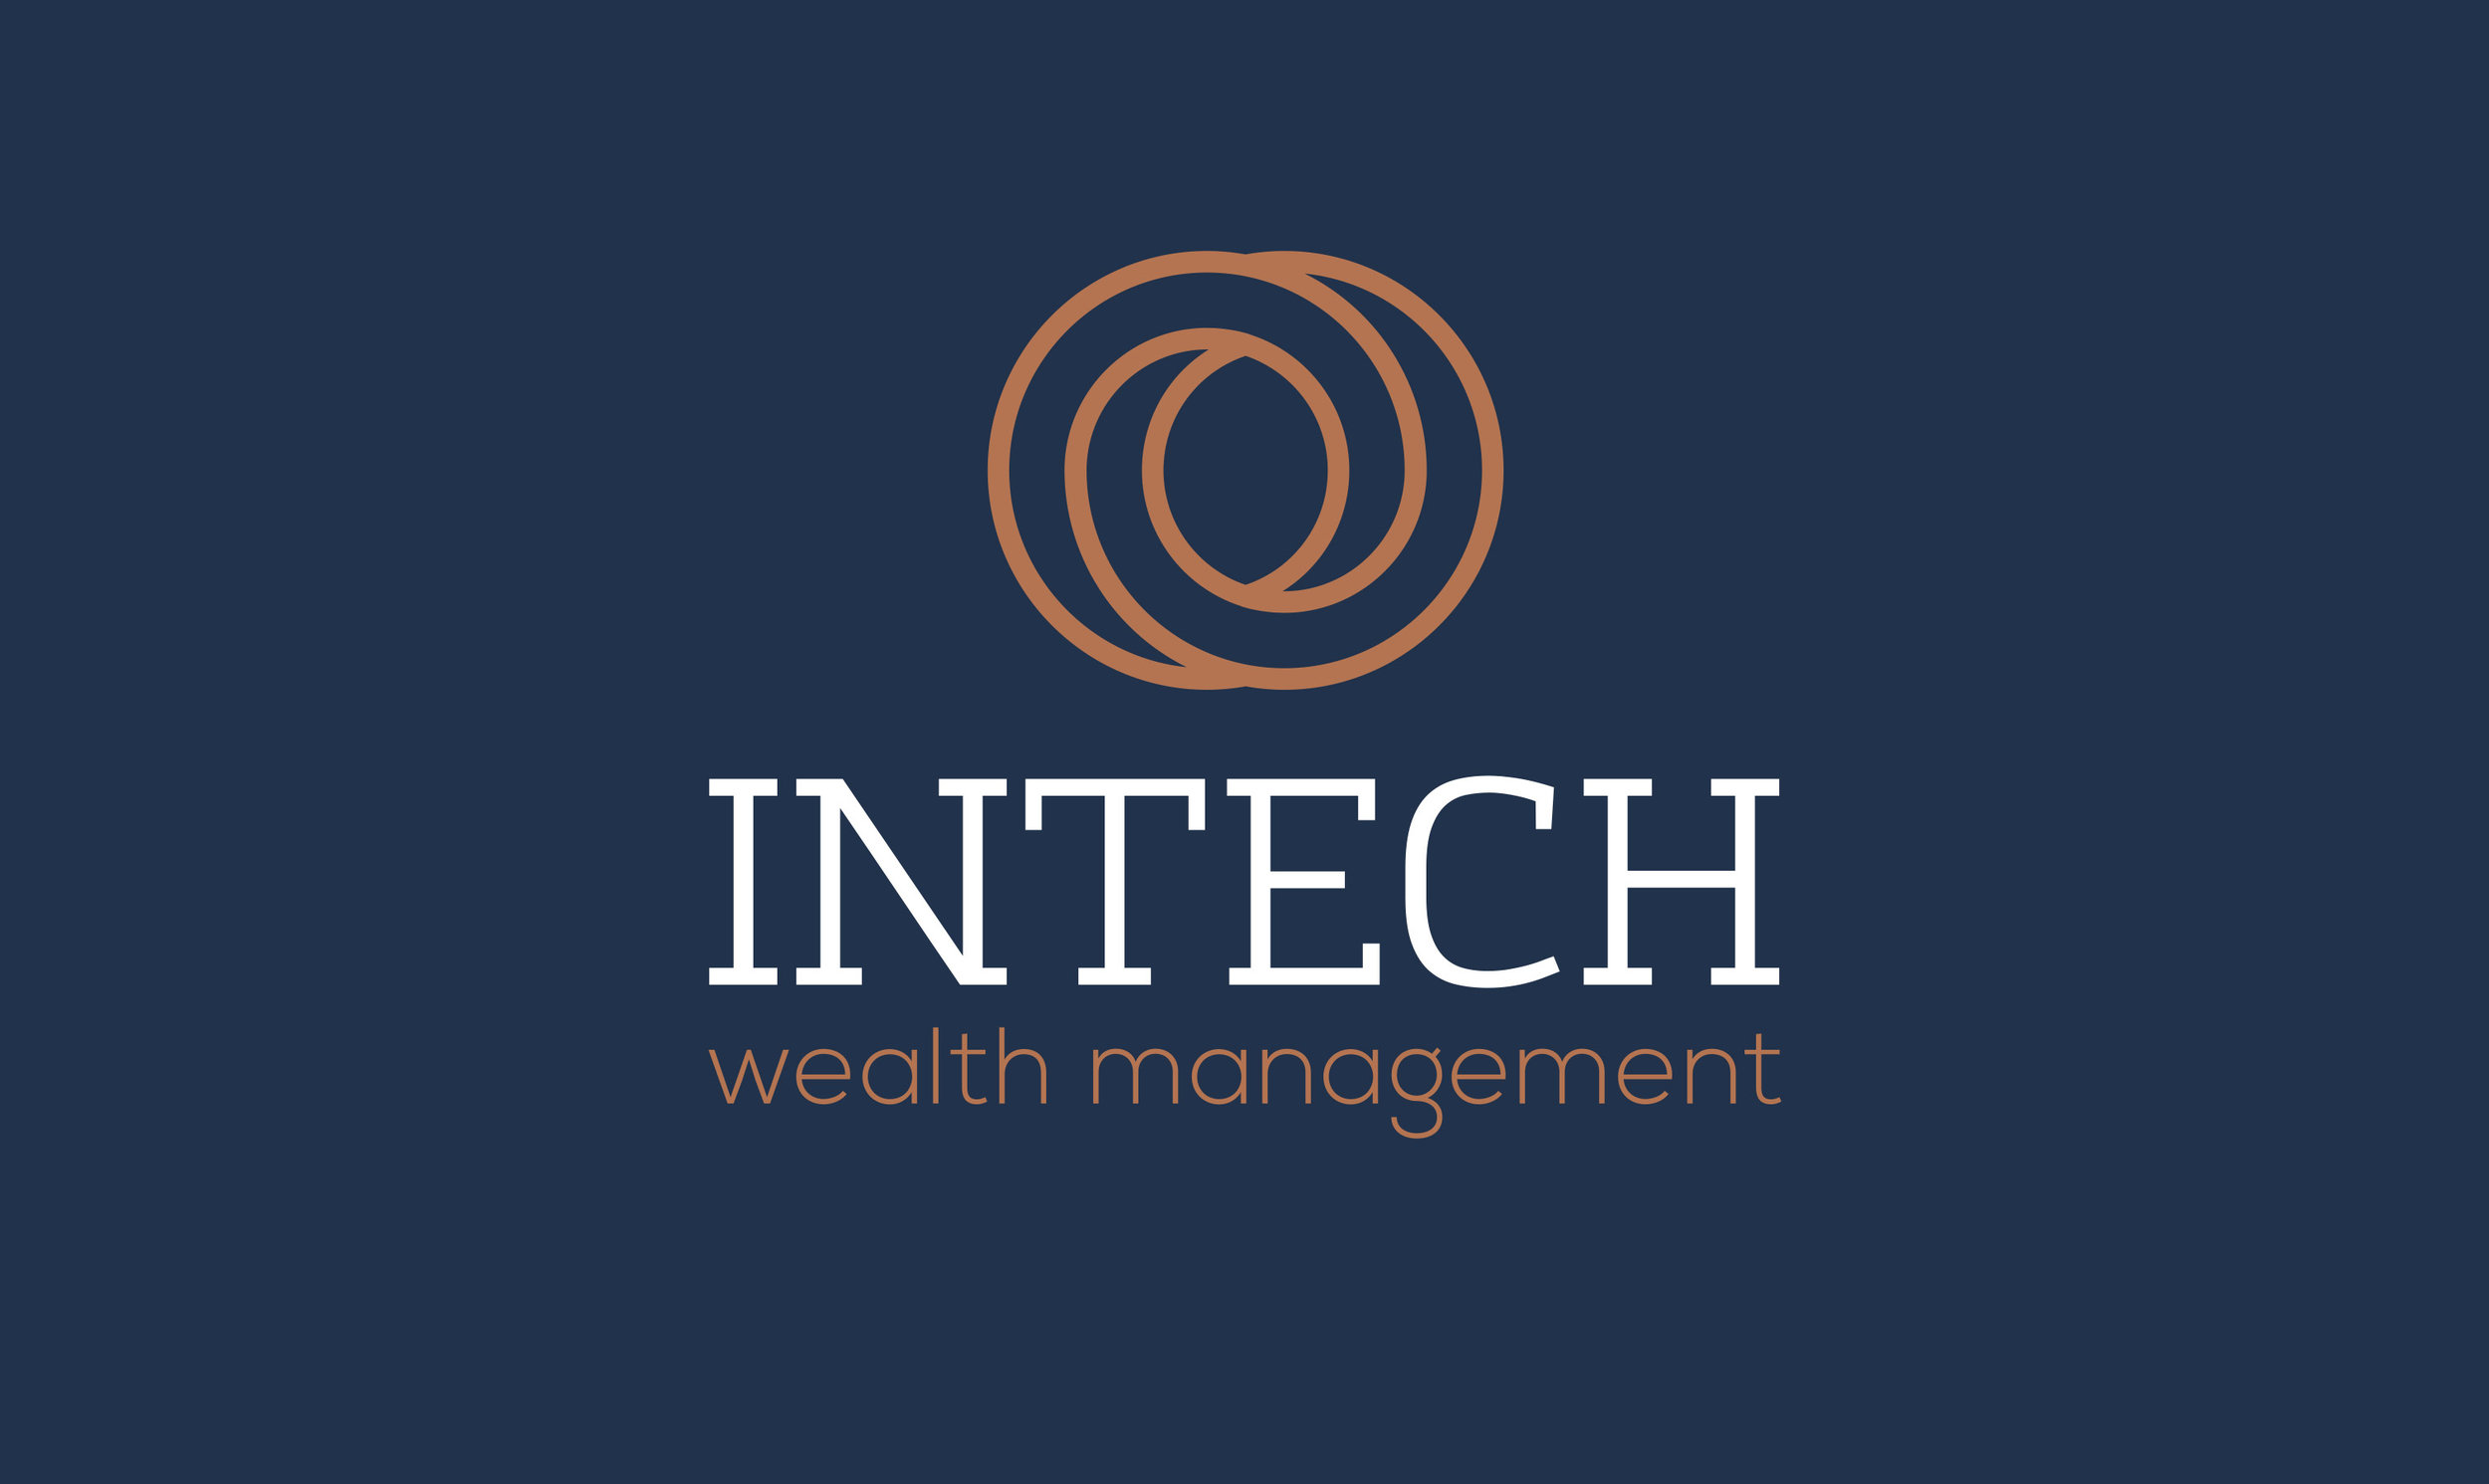 Intech_Wealth_Stationary_03.jpg